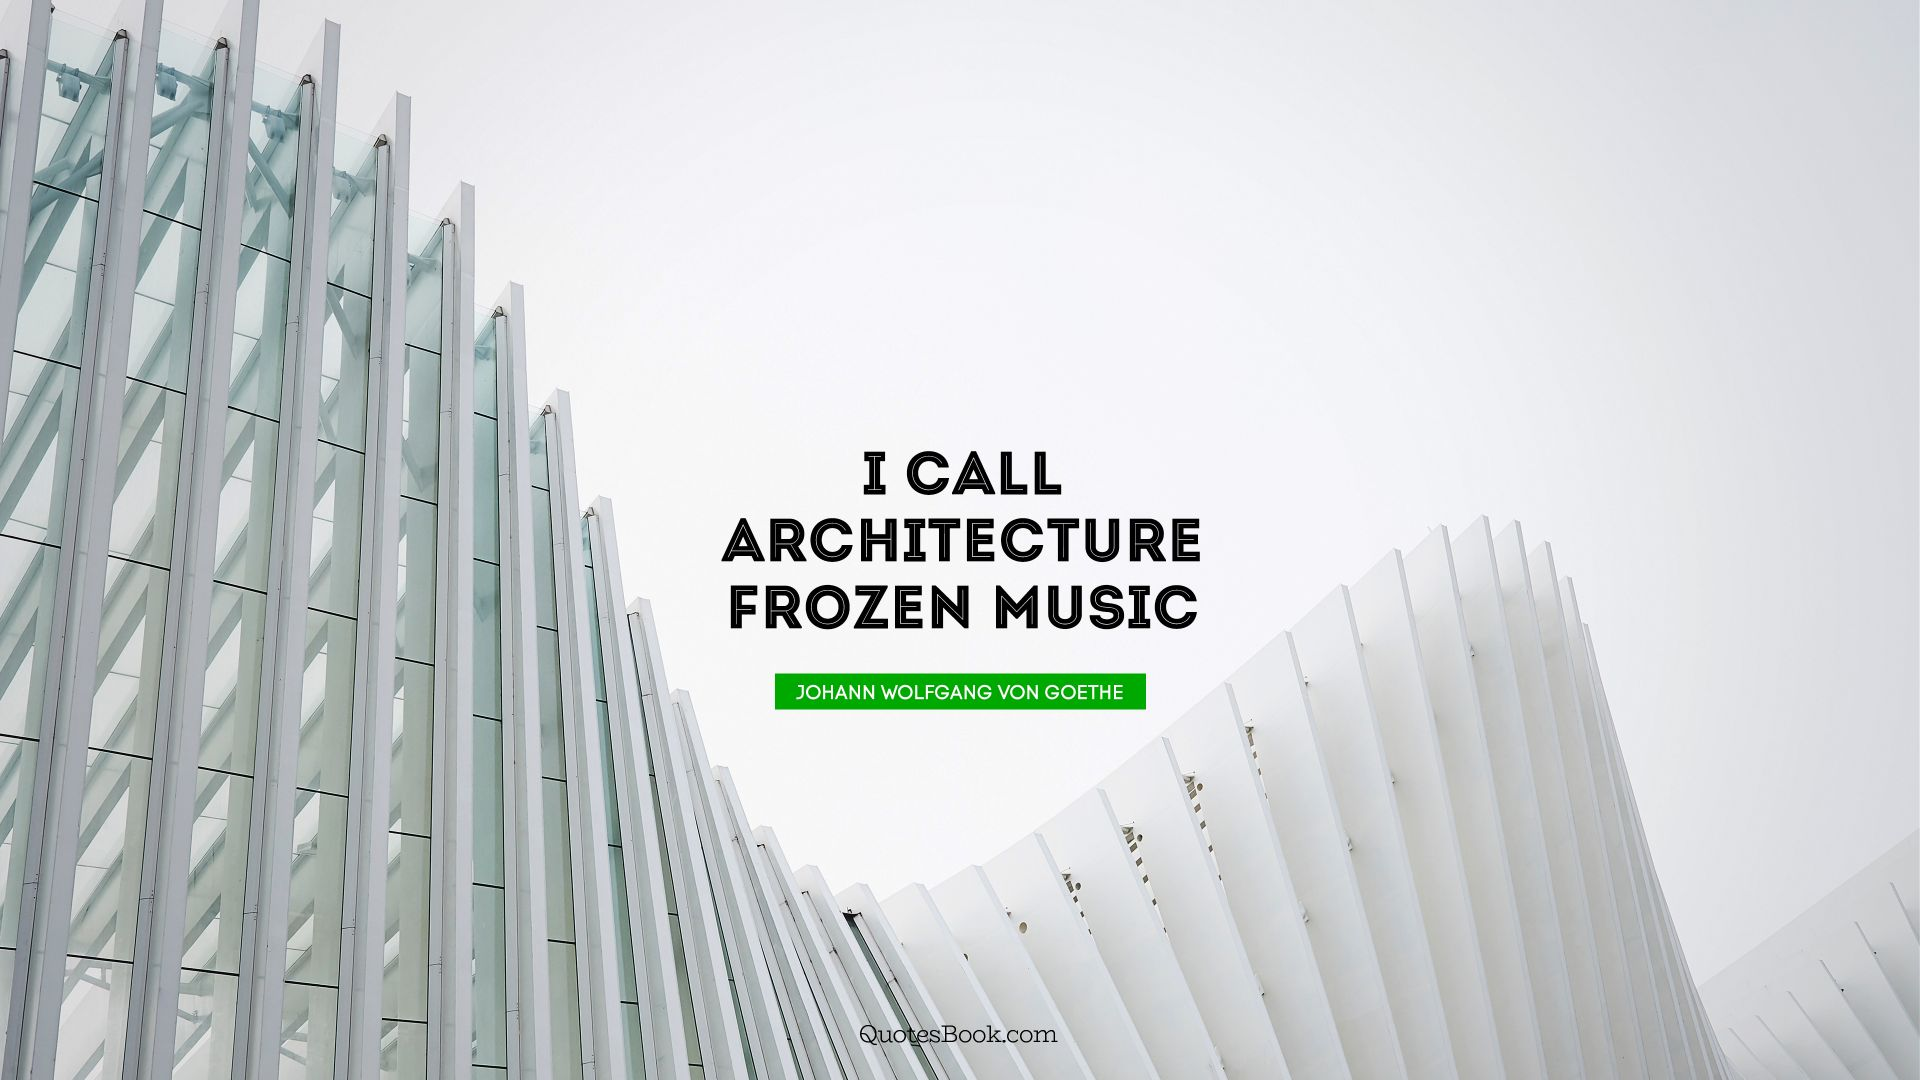 I call architecture frozen music. - Quote by Johann Wolfgang von Goethe